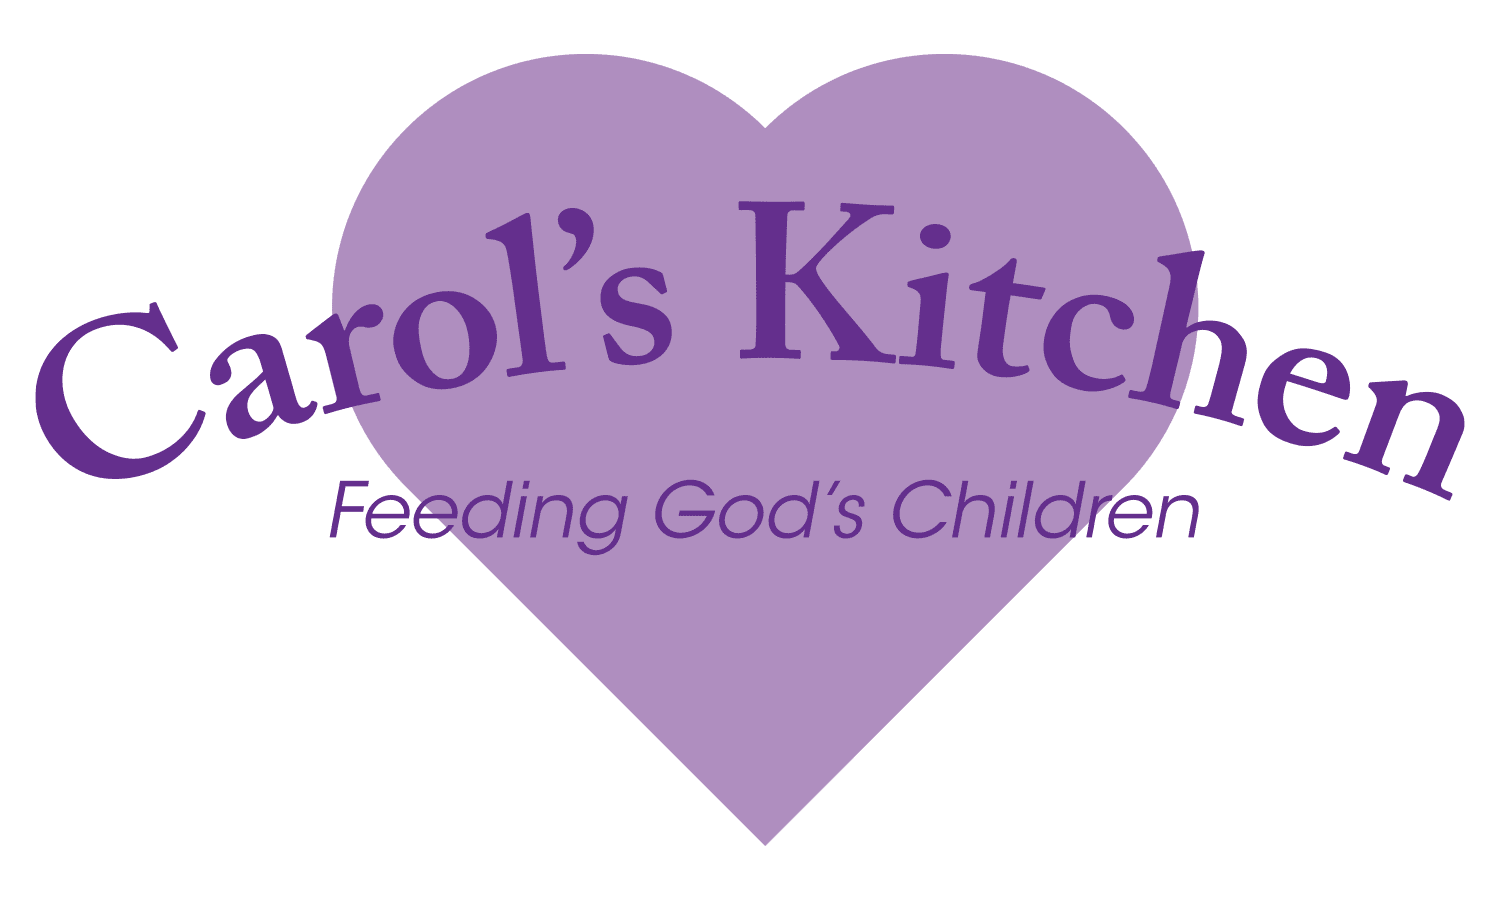 Carol's Kitchen served at St. Kateri Tekawitha Catholic Church